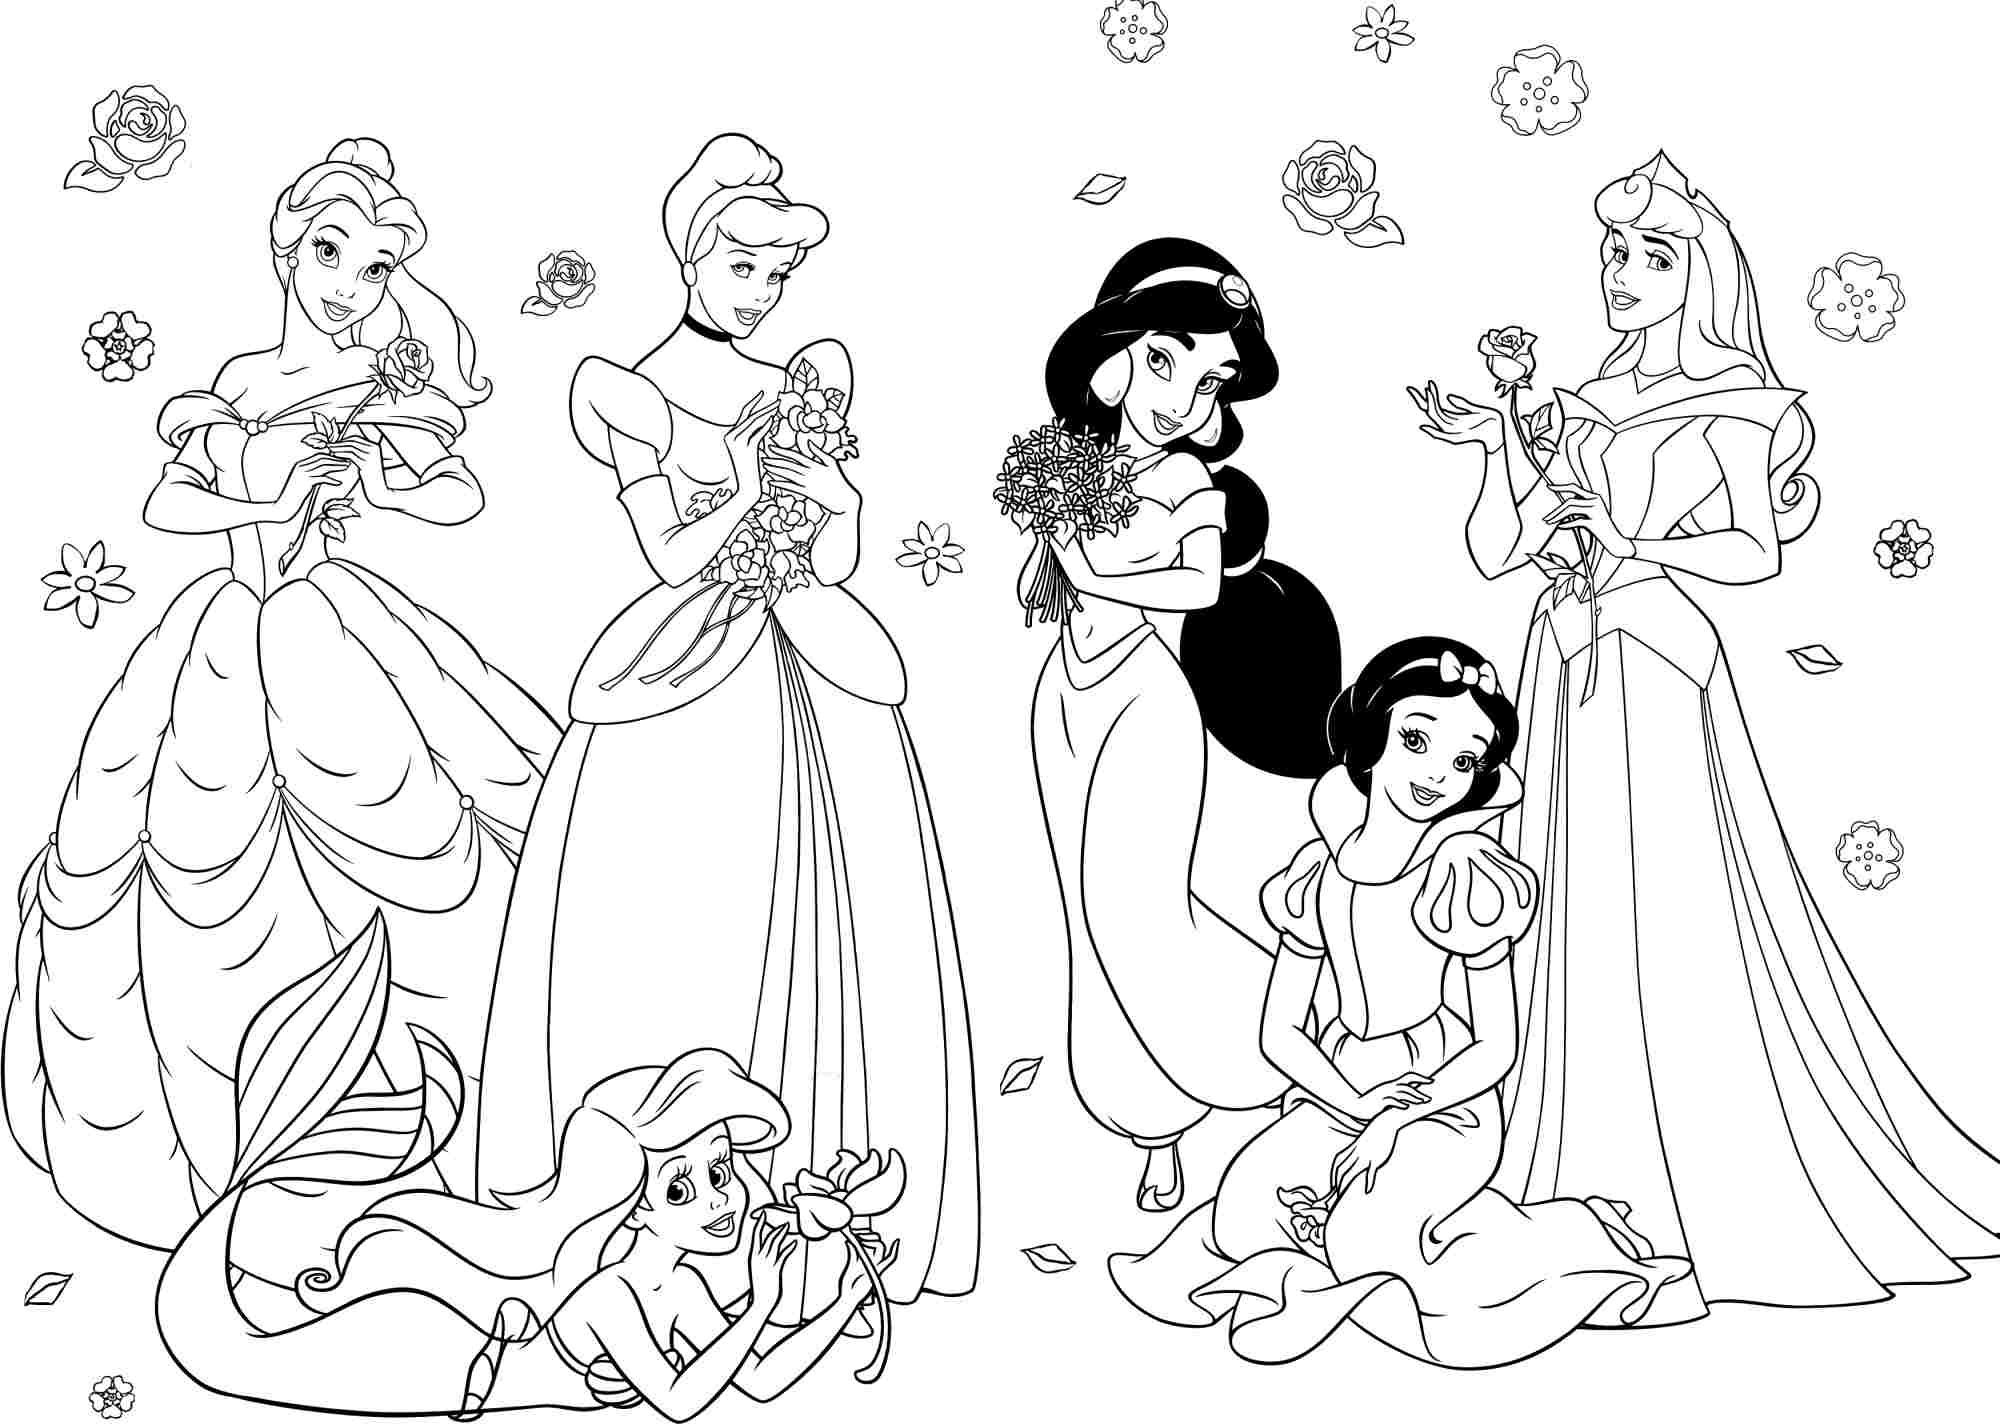 coloring pages for girls disney coloring pages for girls disney girls coloring for pages disney